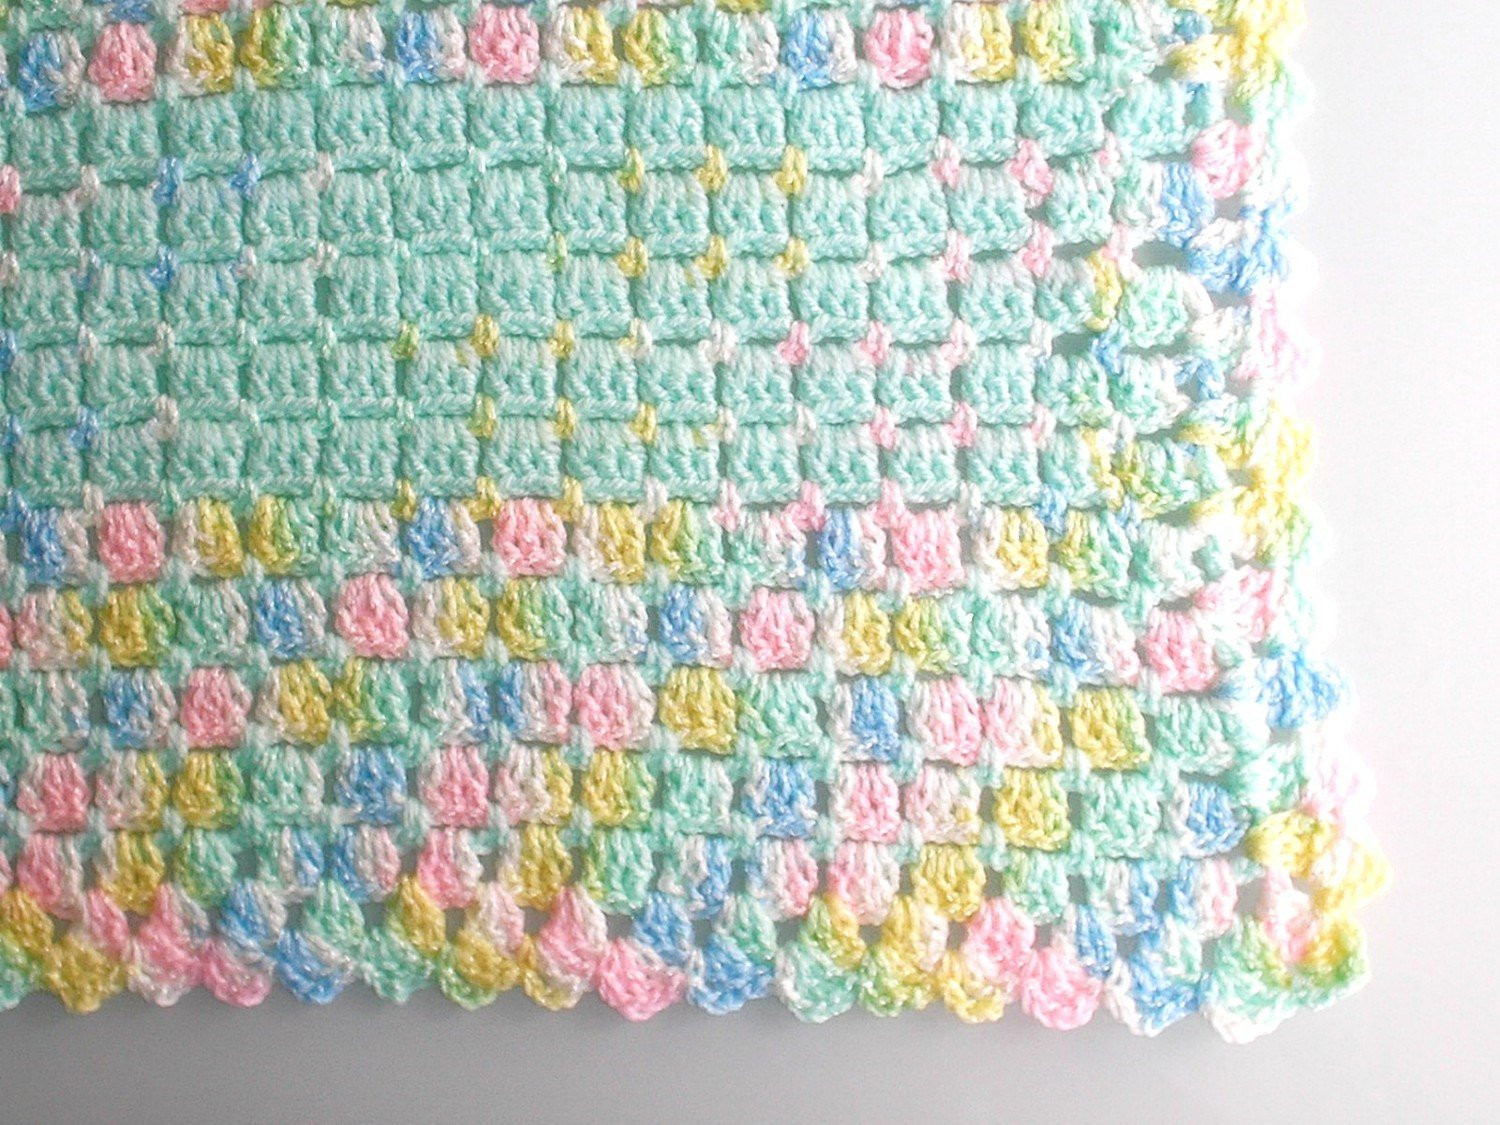 Baby Blanket crocheted in soft baby yarn mint green with